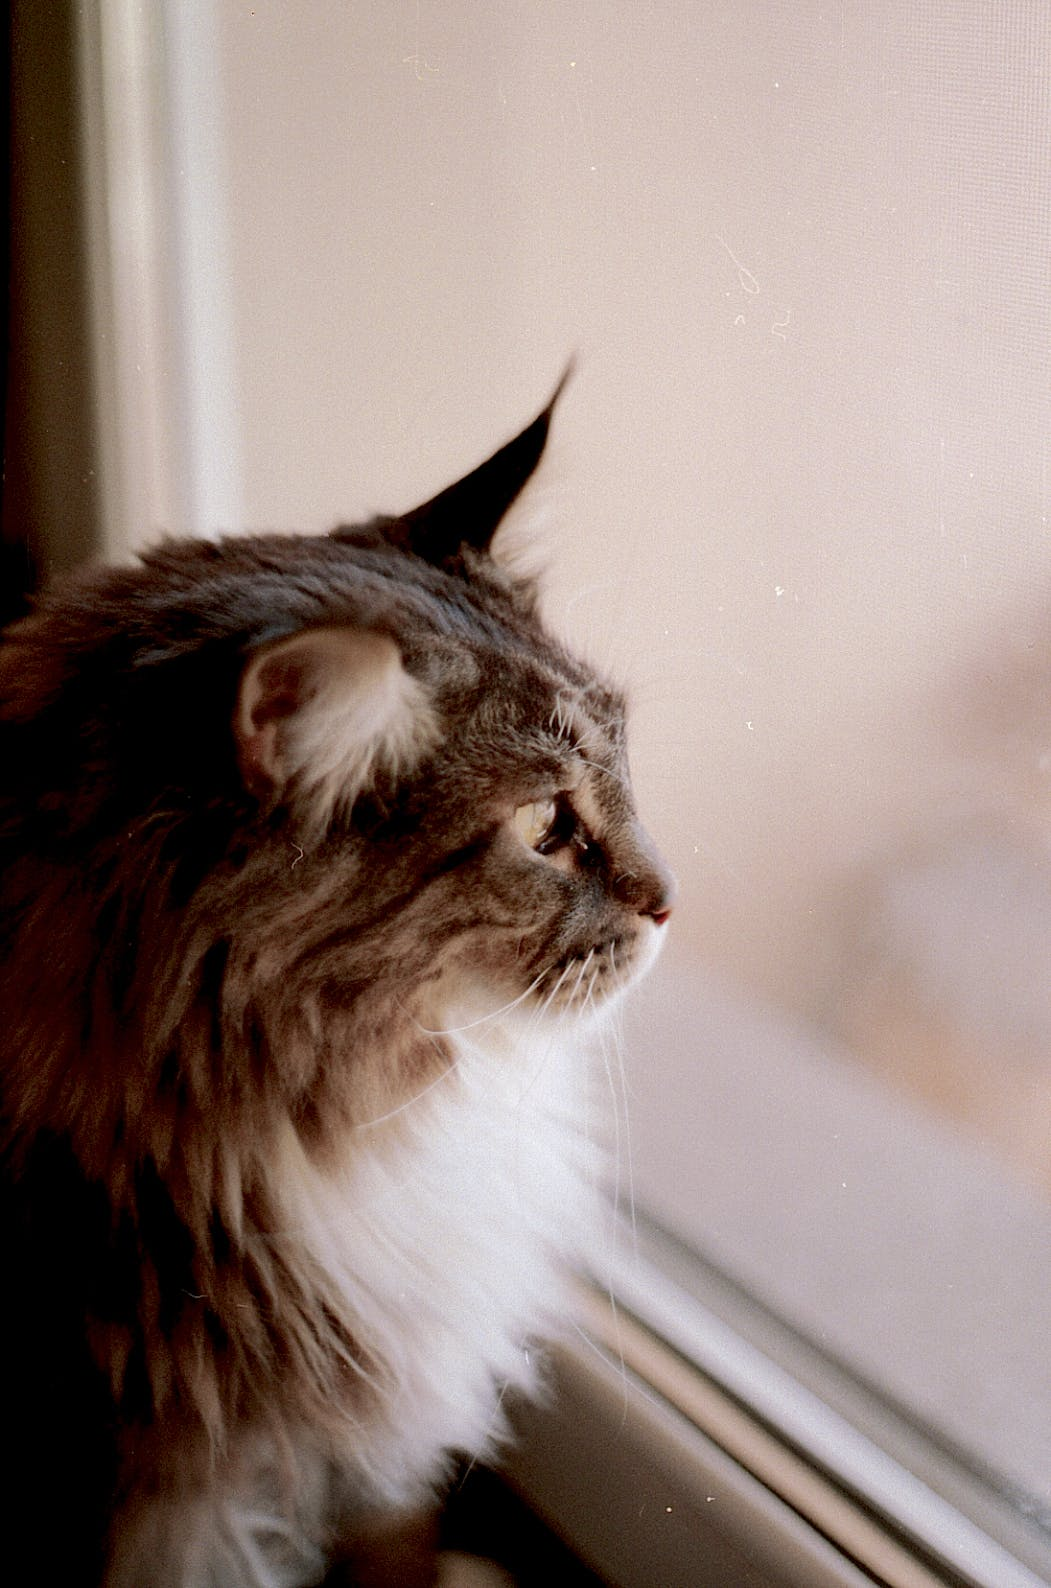 Brown and Gray Haired Cat Looking Out the Glass Window